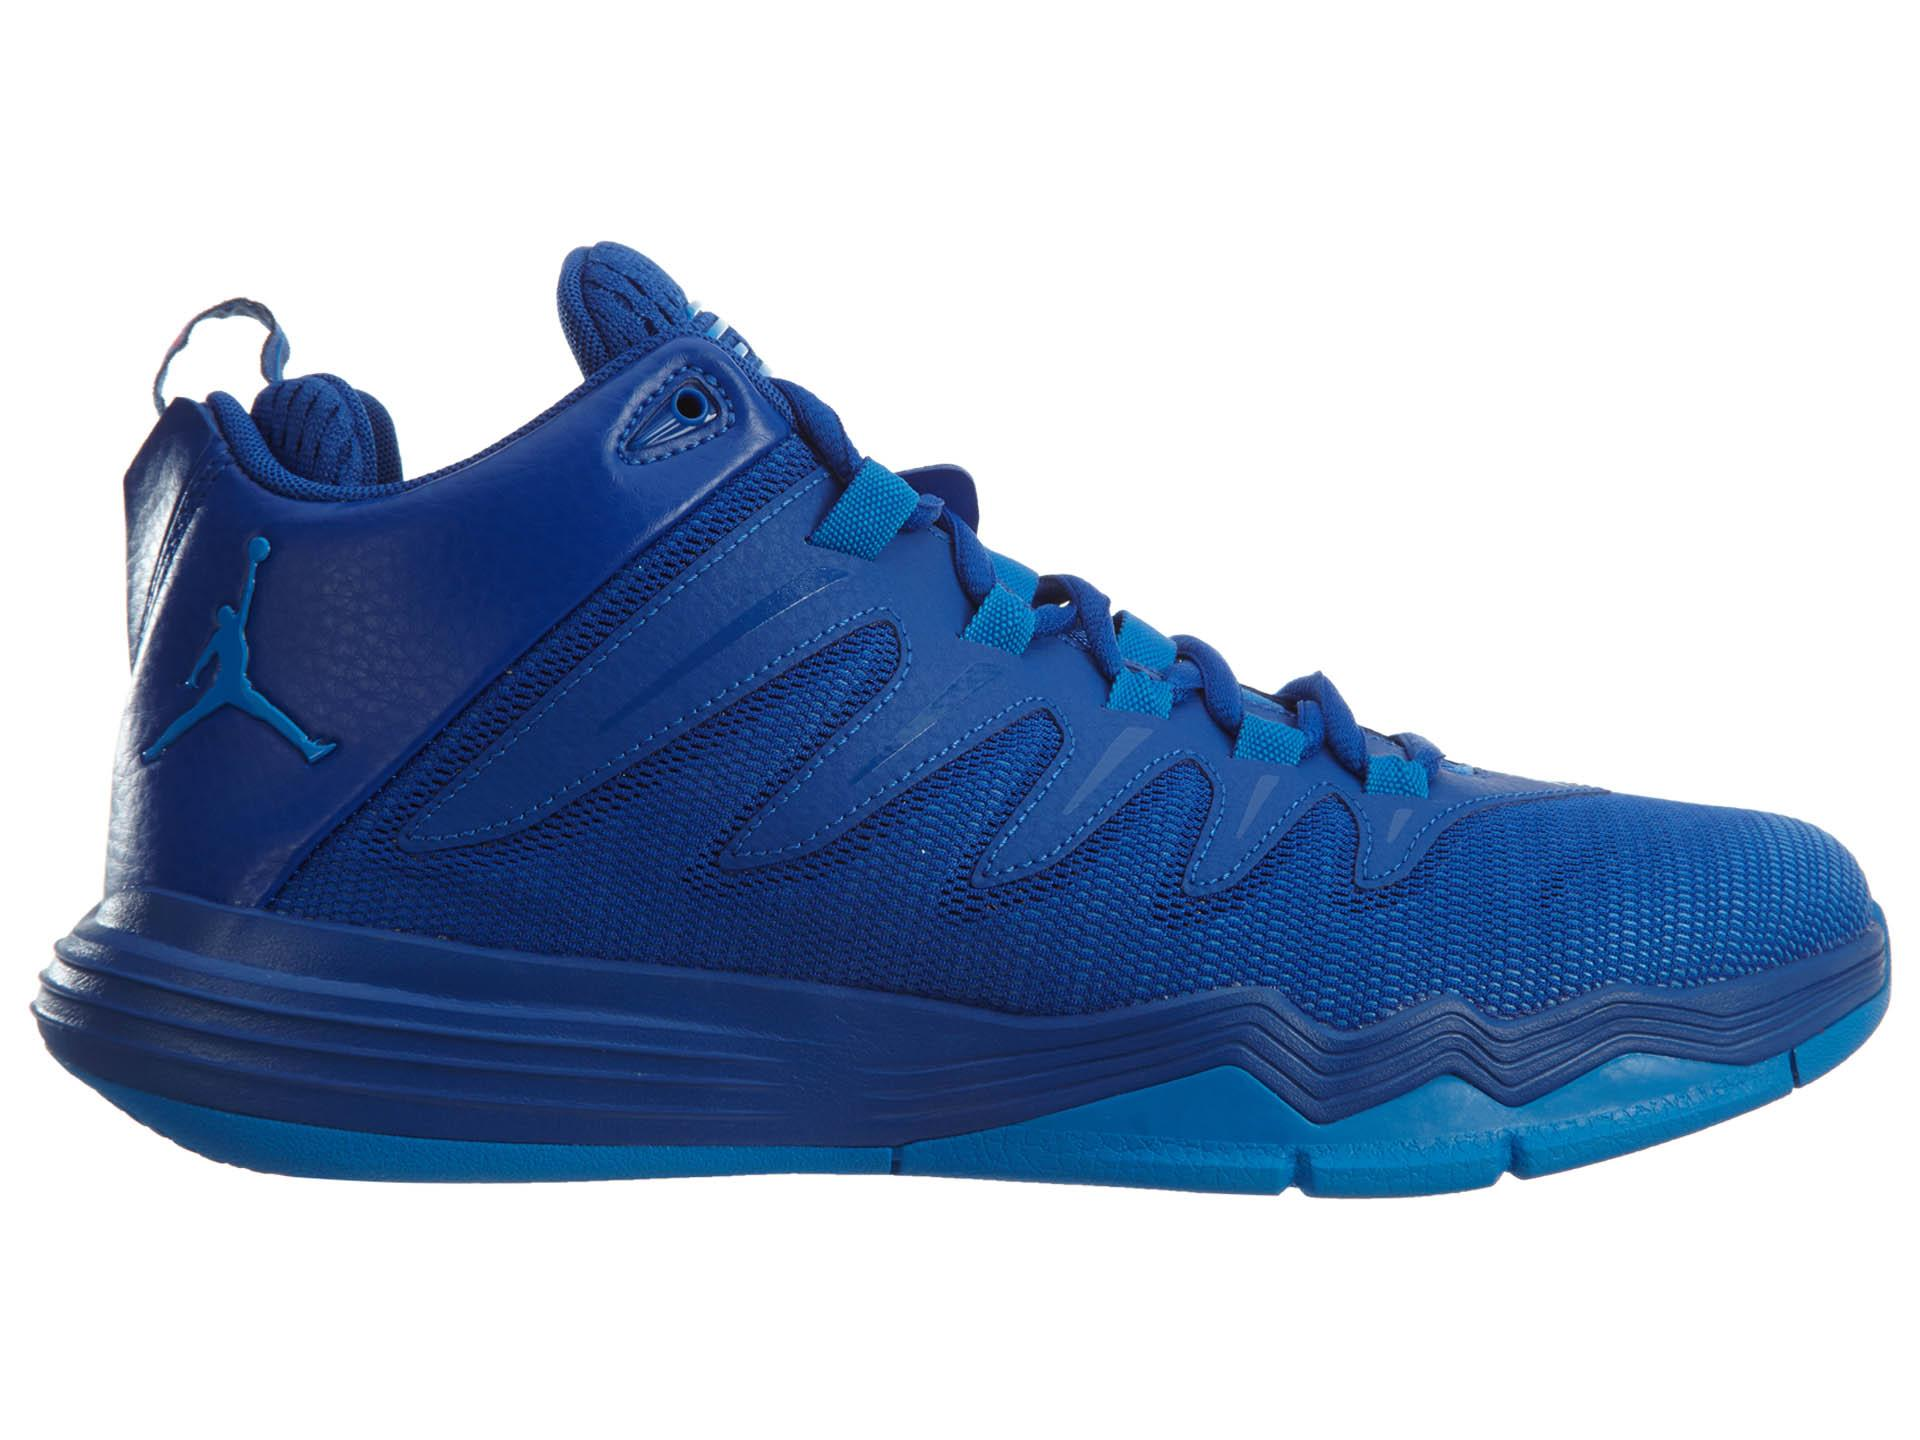 80c78a0d84aab4 Lyst - Nike Cp3. Ix Game Royal photo Blue-infrared 23 in Blue for Men